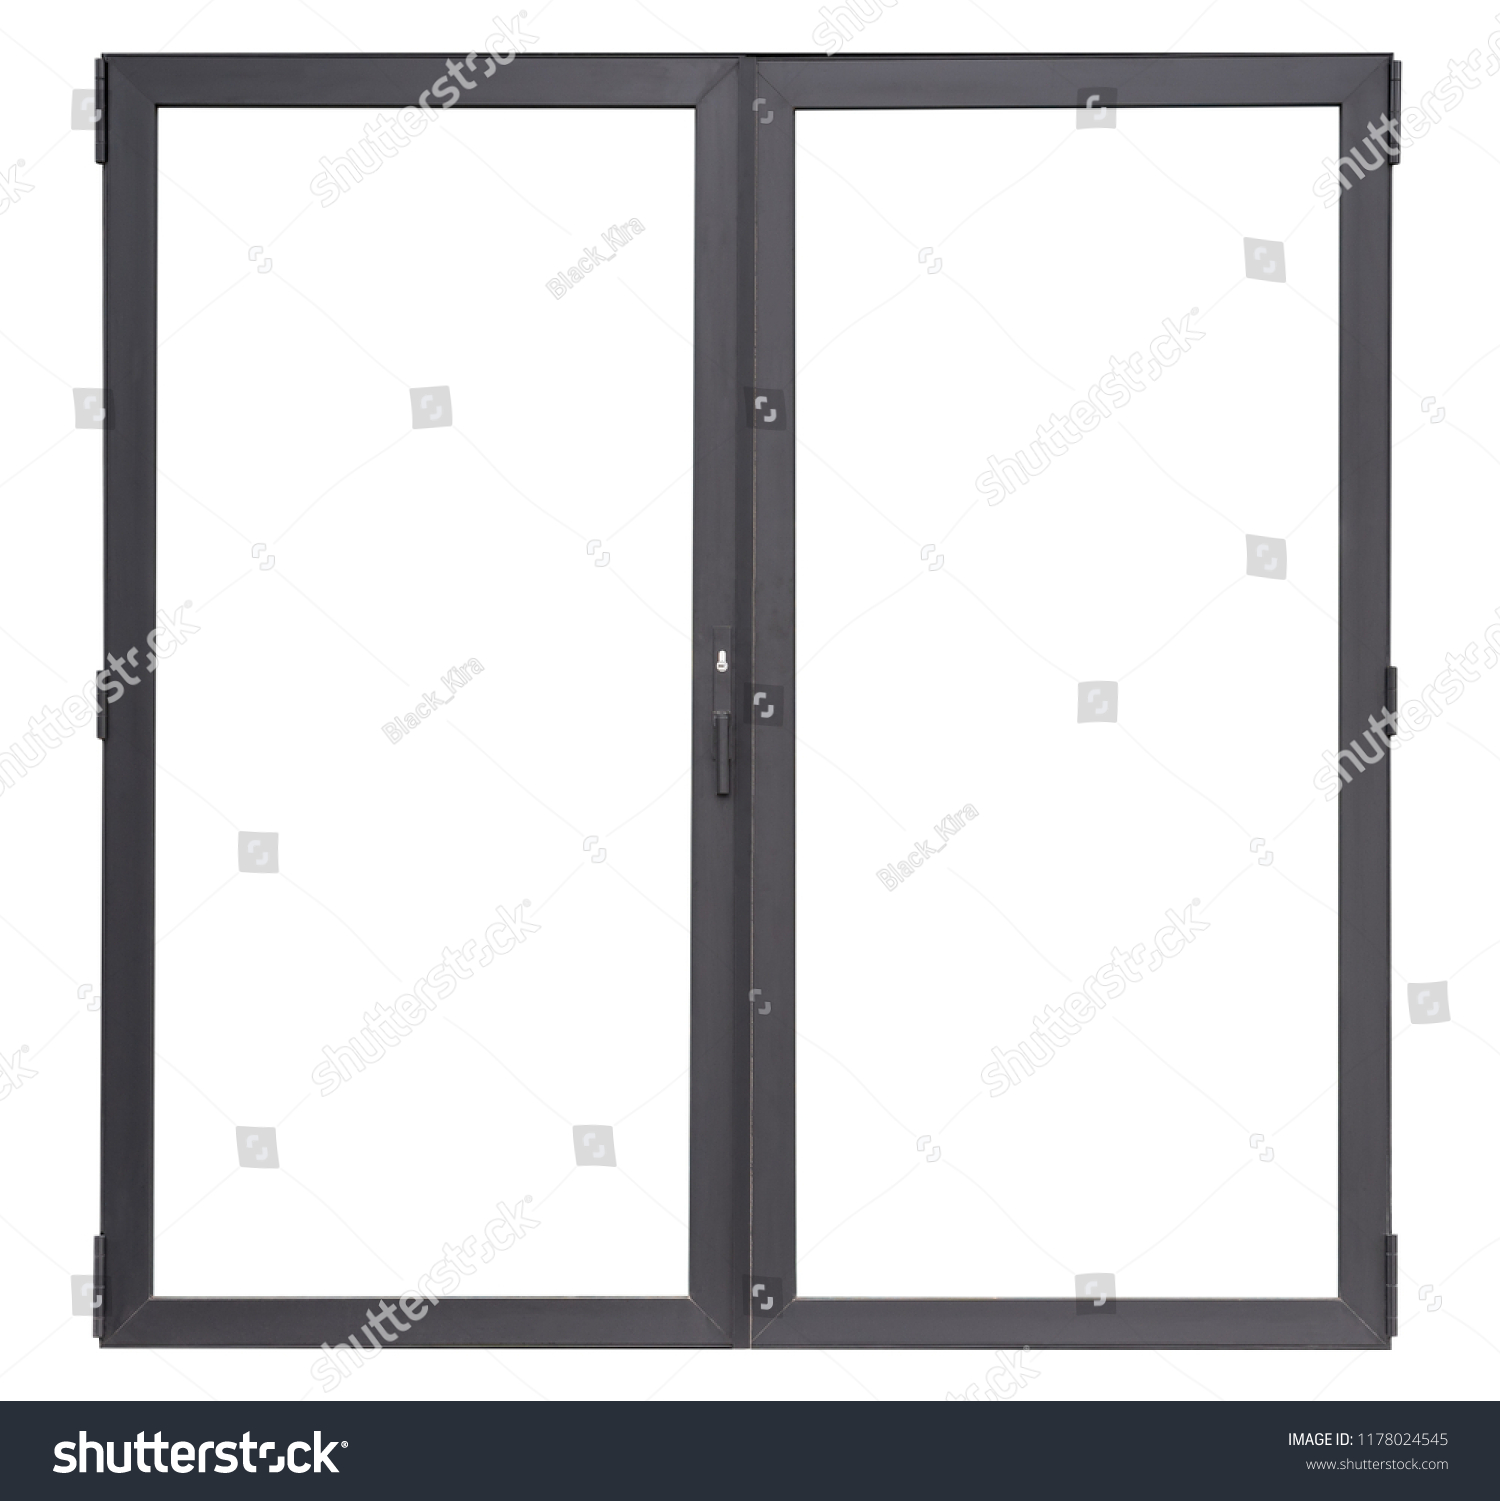 double glass window replacement double glass doors isolated on white background black aluminium office window frame for interior design glass doors isolated on white stock photo edit now